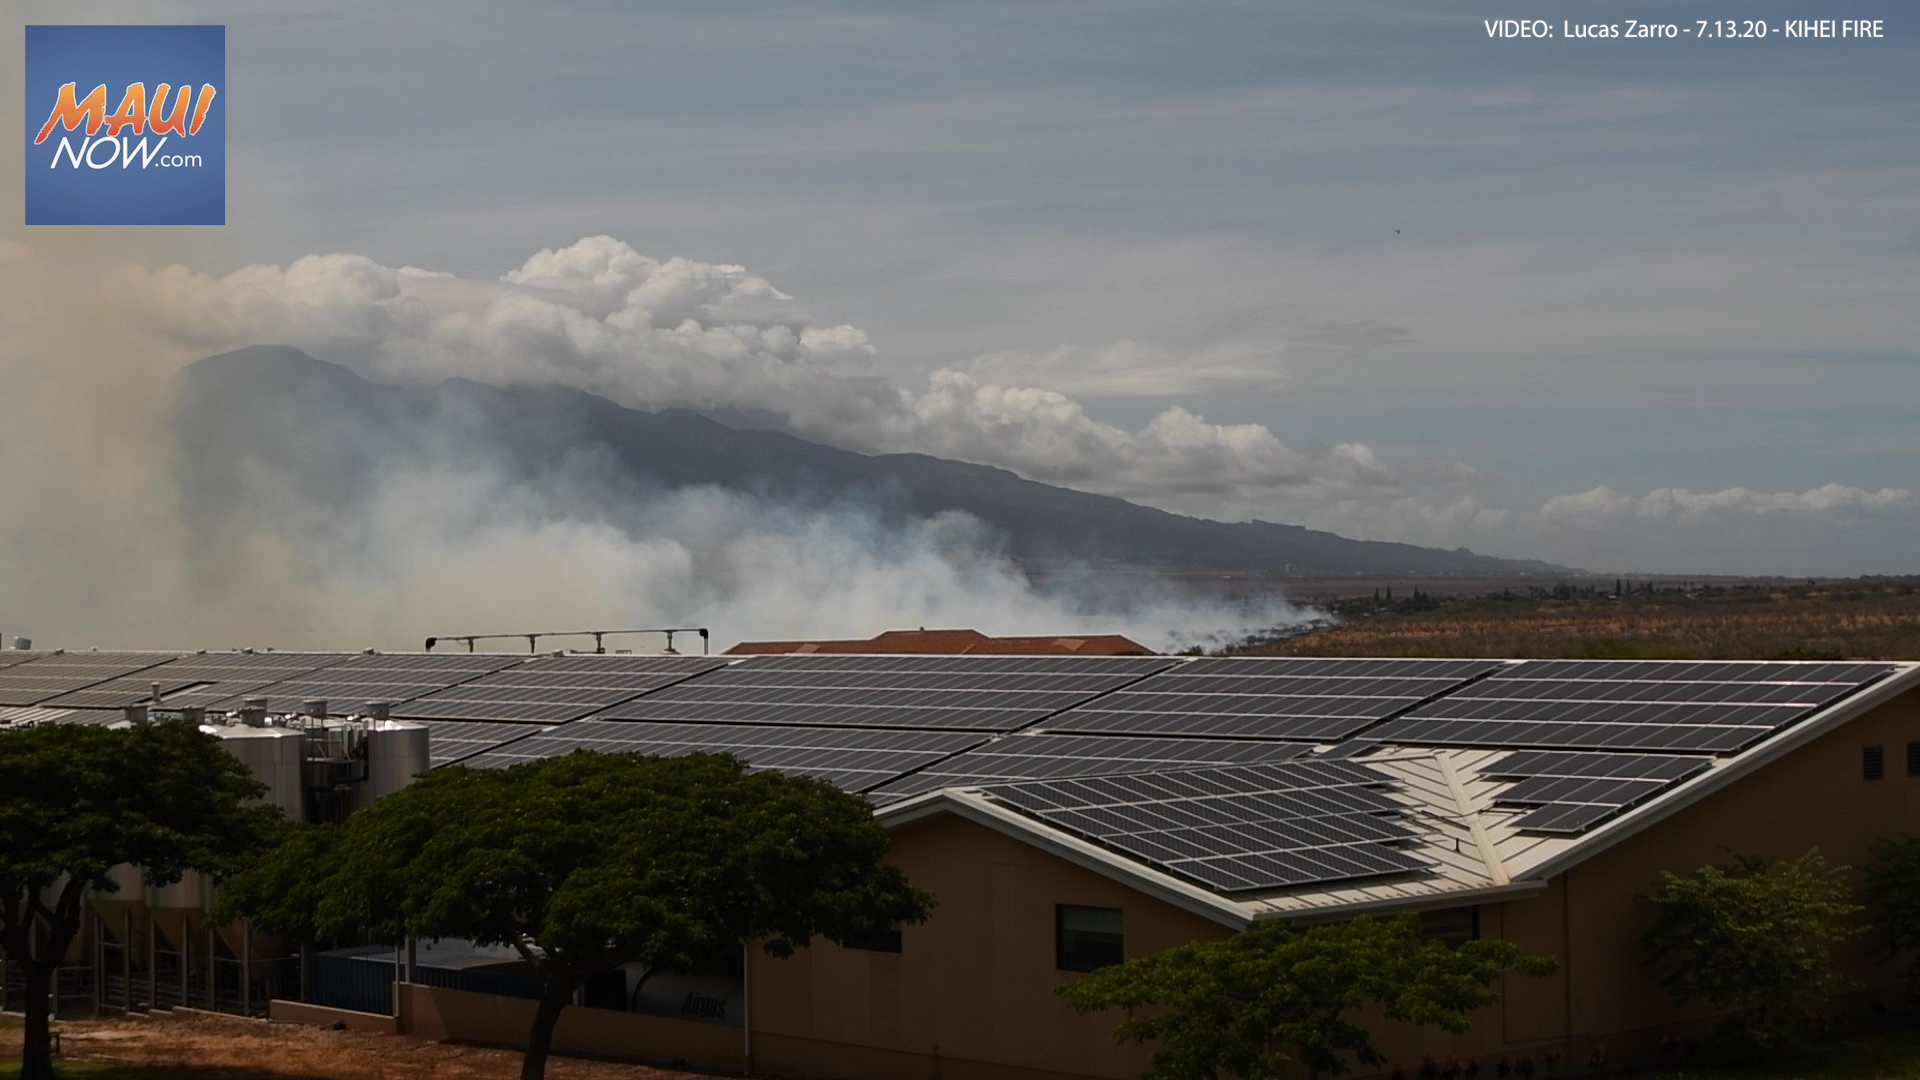 North Kīhei Fire 100% Contained at 50 Acres,  Mop-Up Underway